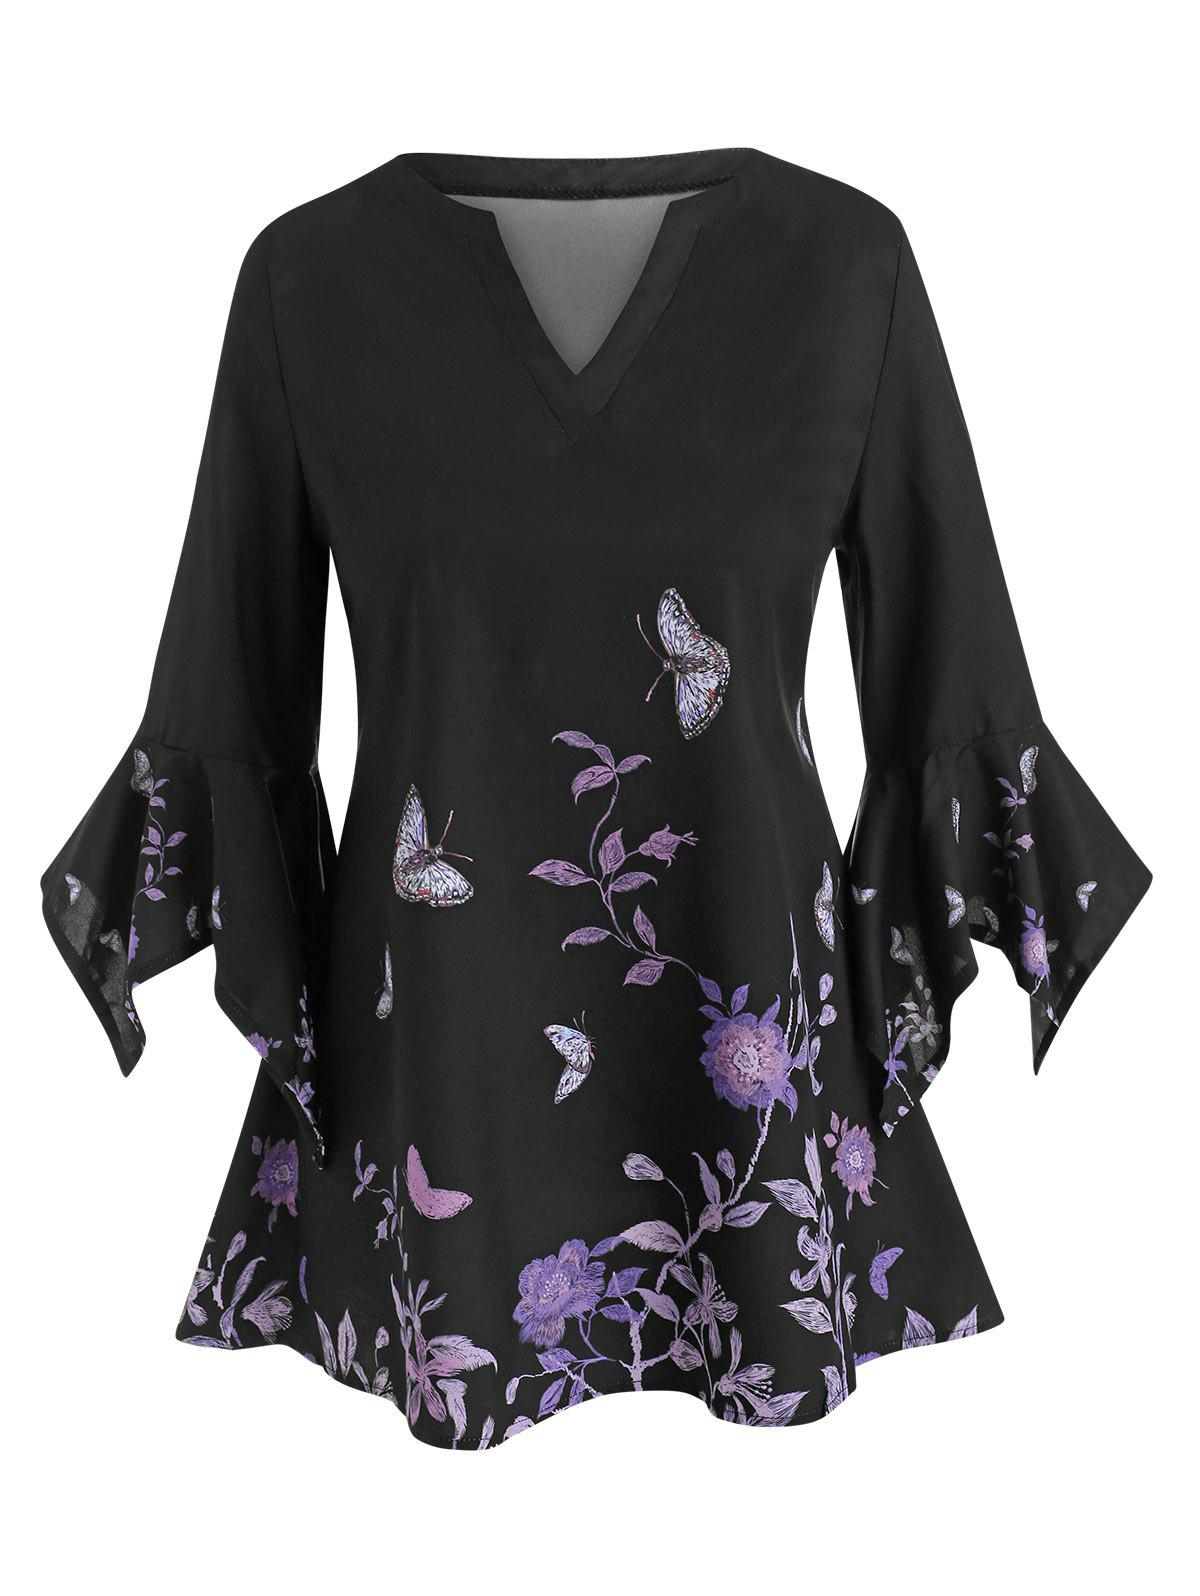 Fancy Floral Butterfly Flare Sleeve Top